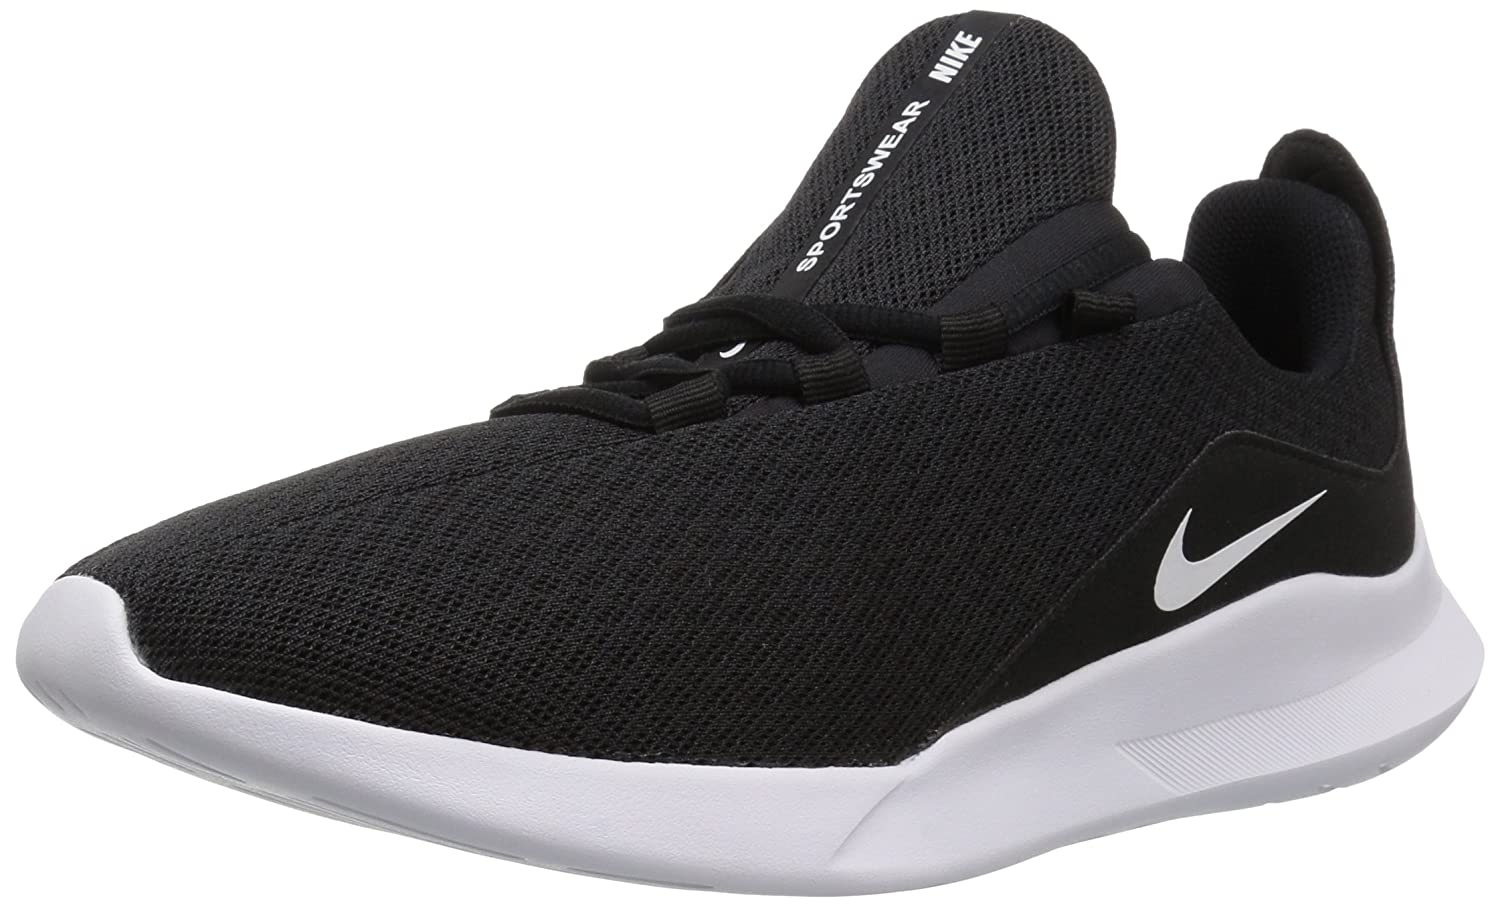 NIKE Men's Viale Running Shoe B078HCC483 11.5 D(M) US|Black/White